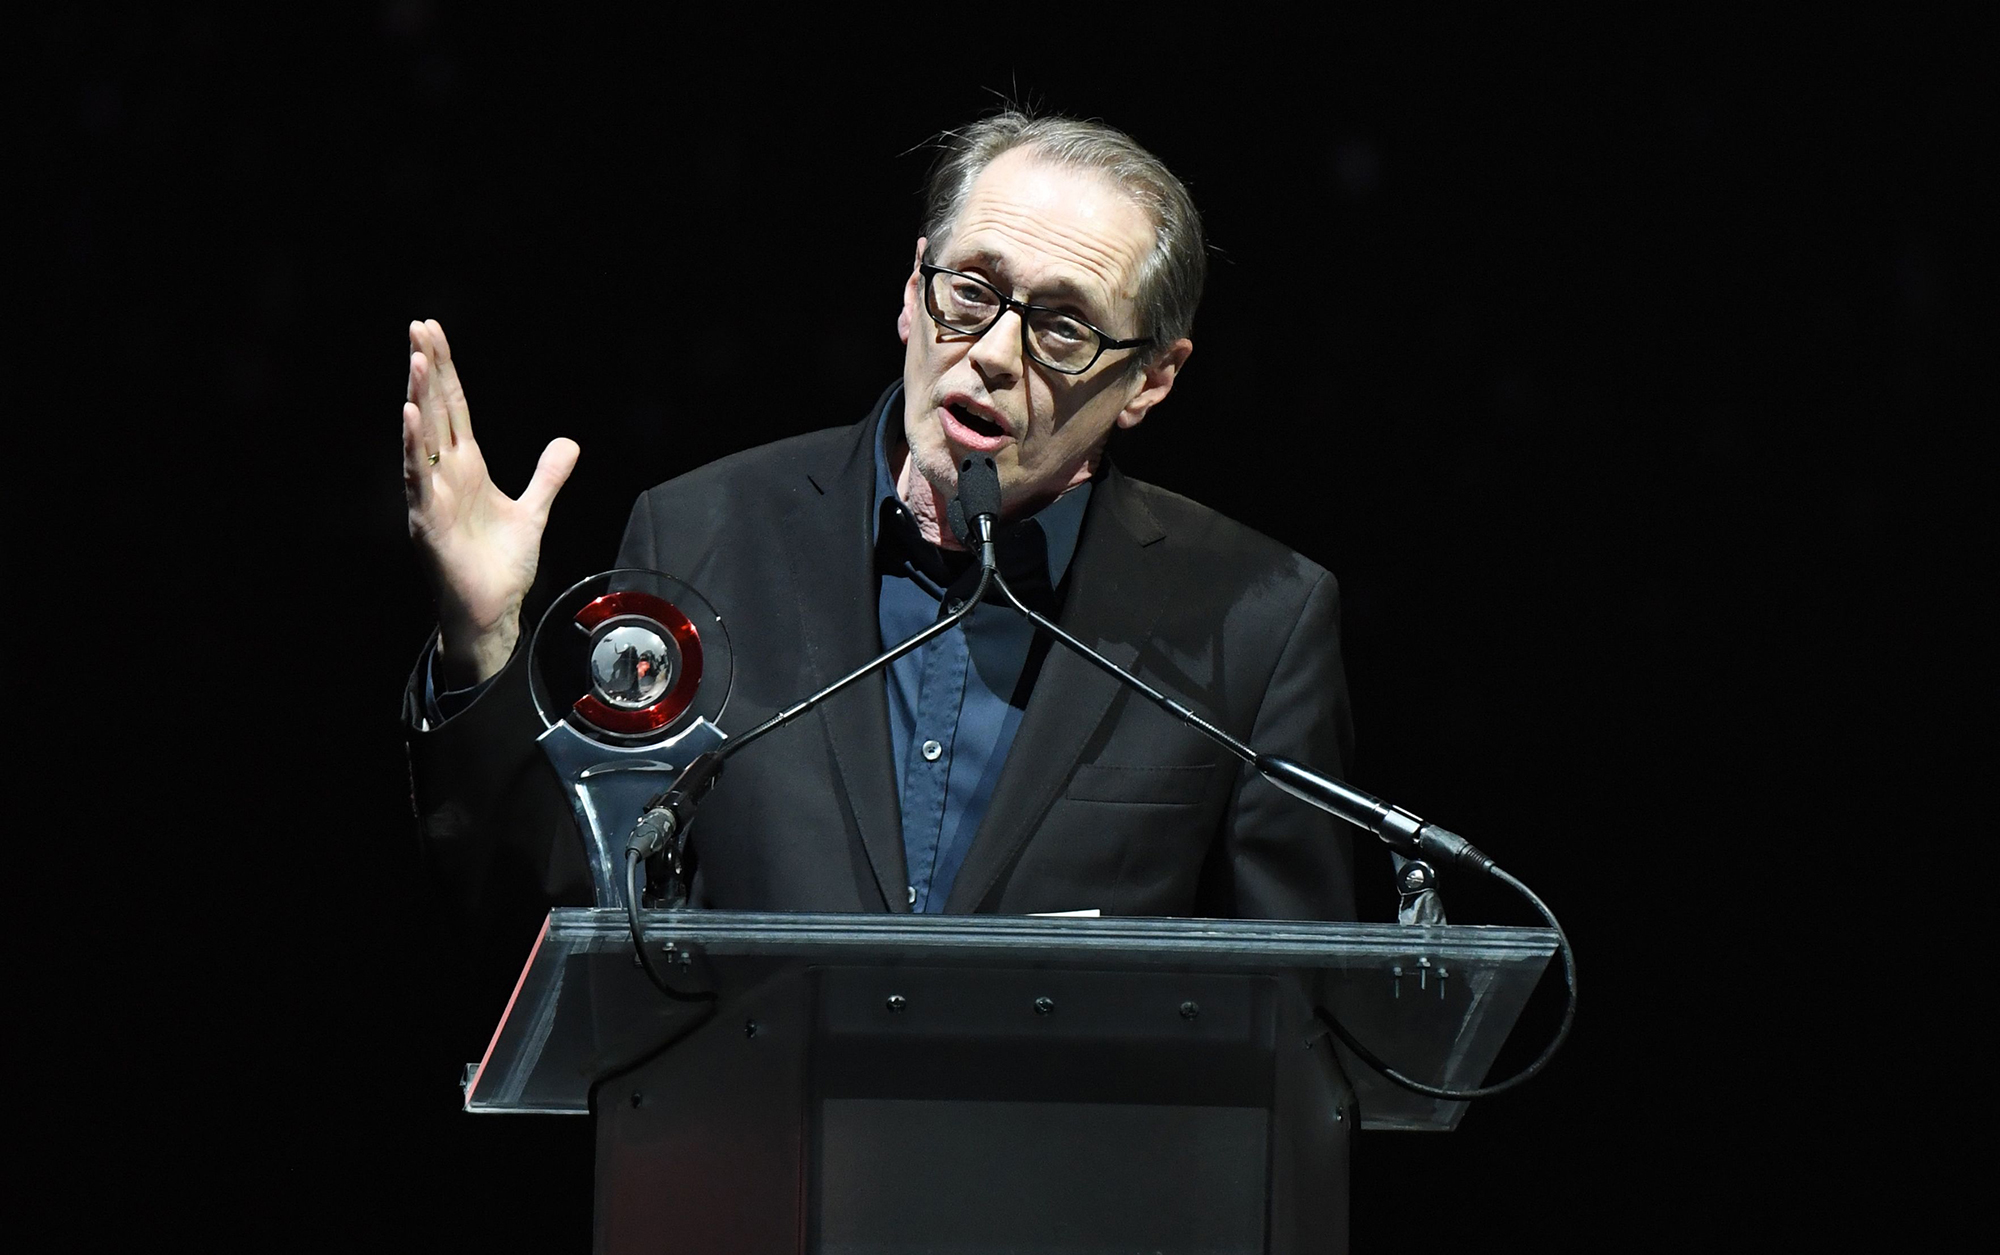 Steve Buscemi Thanks Late Wife Jo Andres for Being His 'Biggest Supporter' - Steve Buscemi speaks on stage for the 2019 Big Screen Achievement Awards at The Colosseum at Caesars Palace on April 4, 2019.